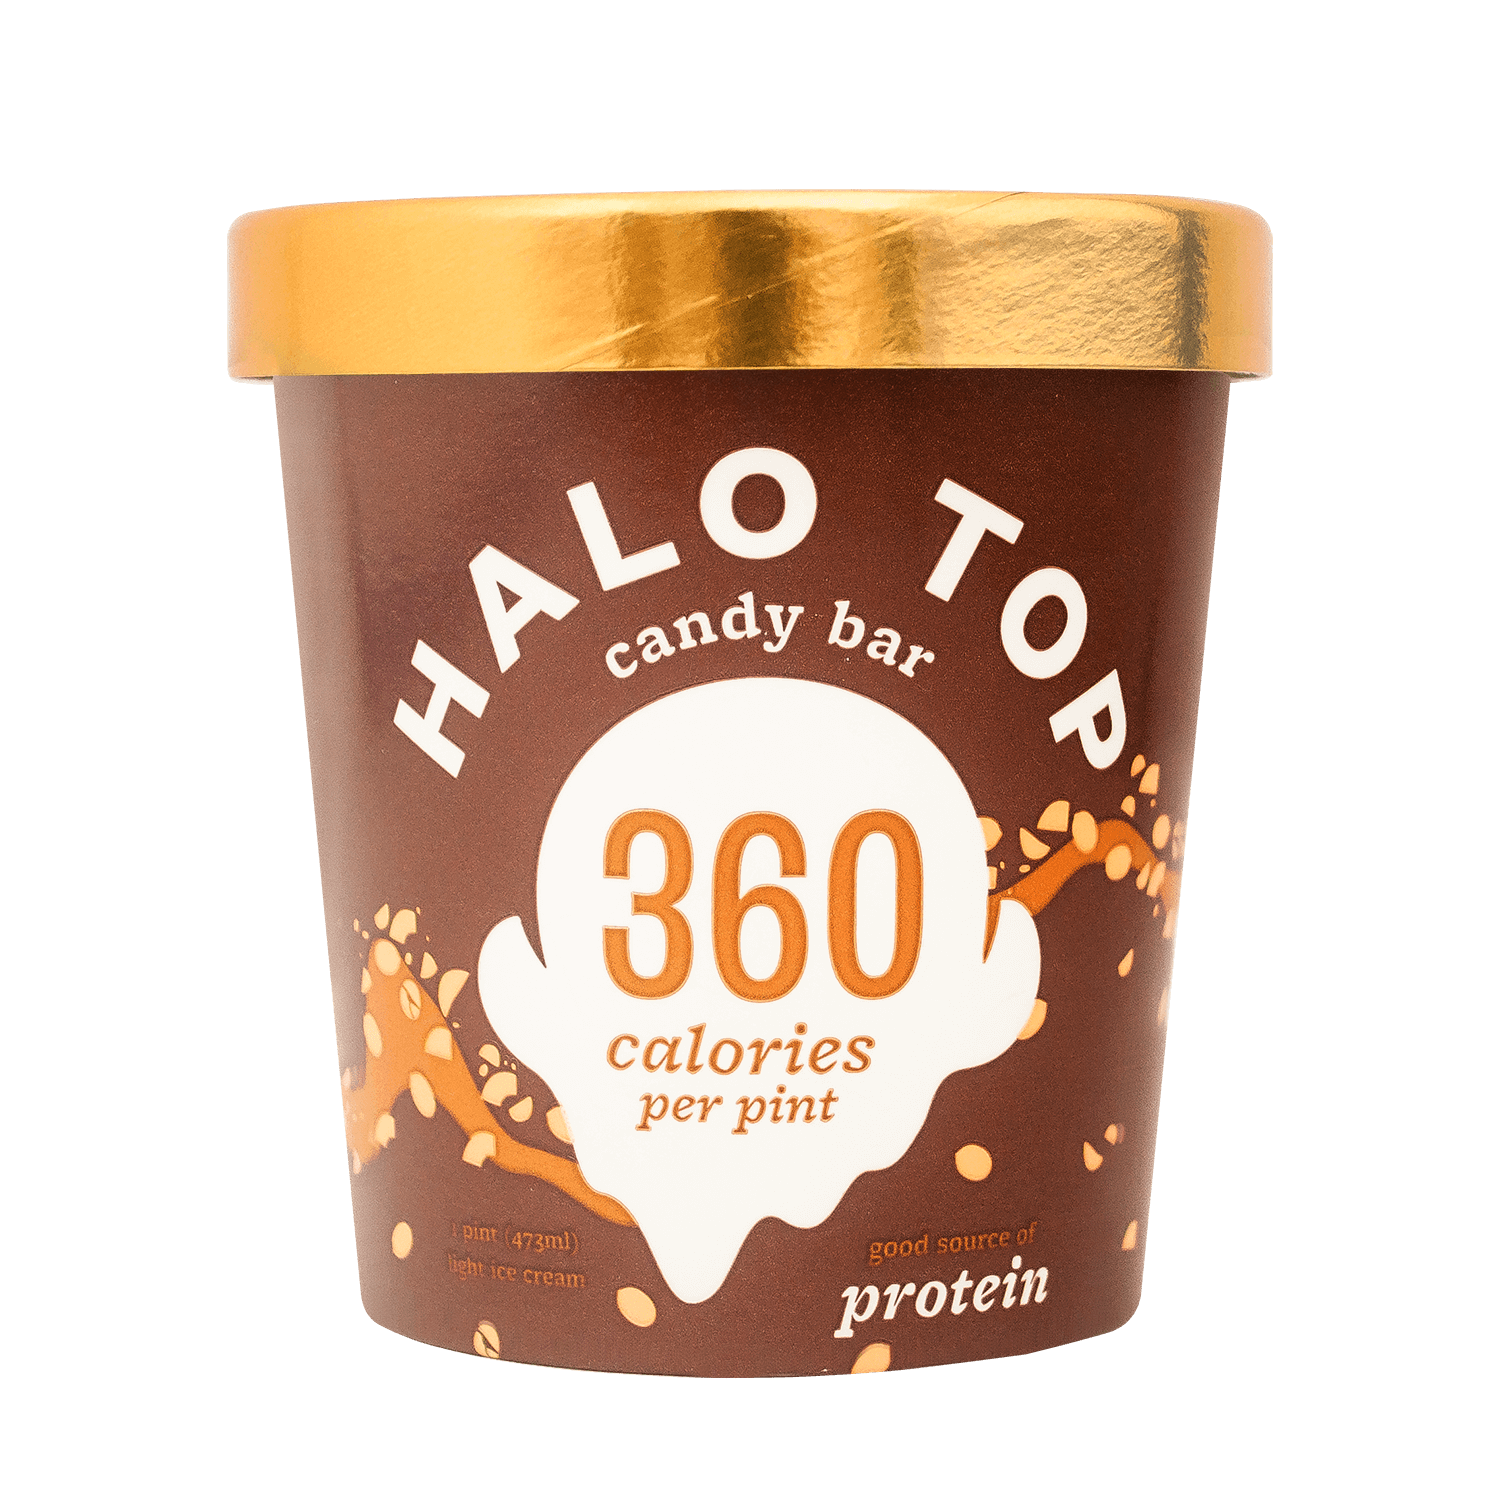 Calling All Halo Top Lovers King Kullen Top Candy Icecream Bar Candy Bar